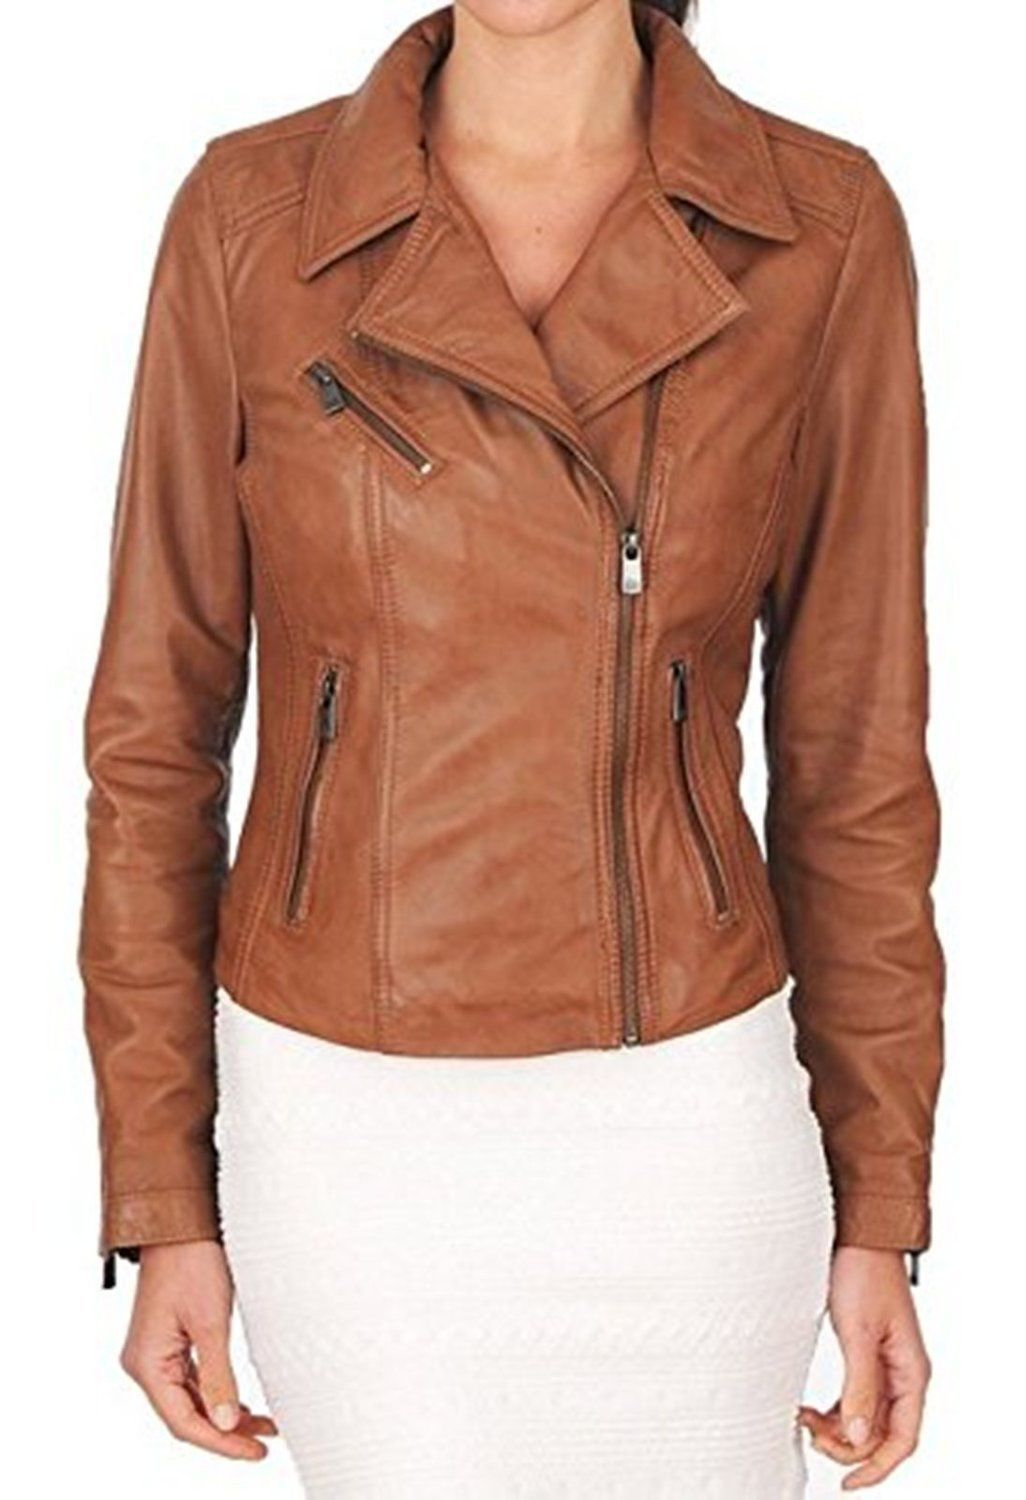 Cool amazing new womenus leather jacket soft real lambskin biker